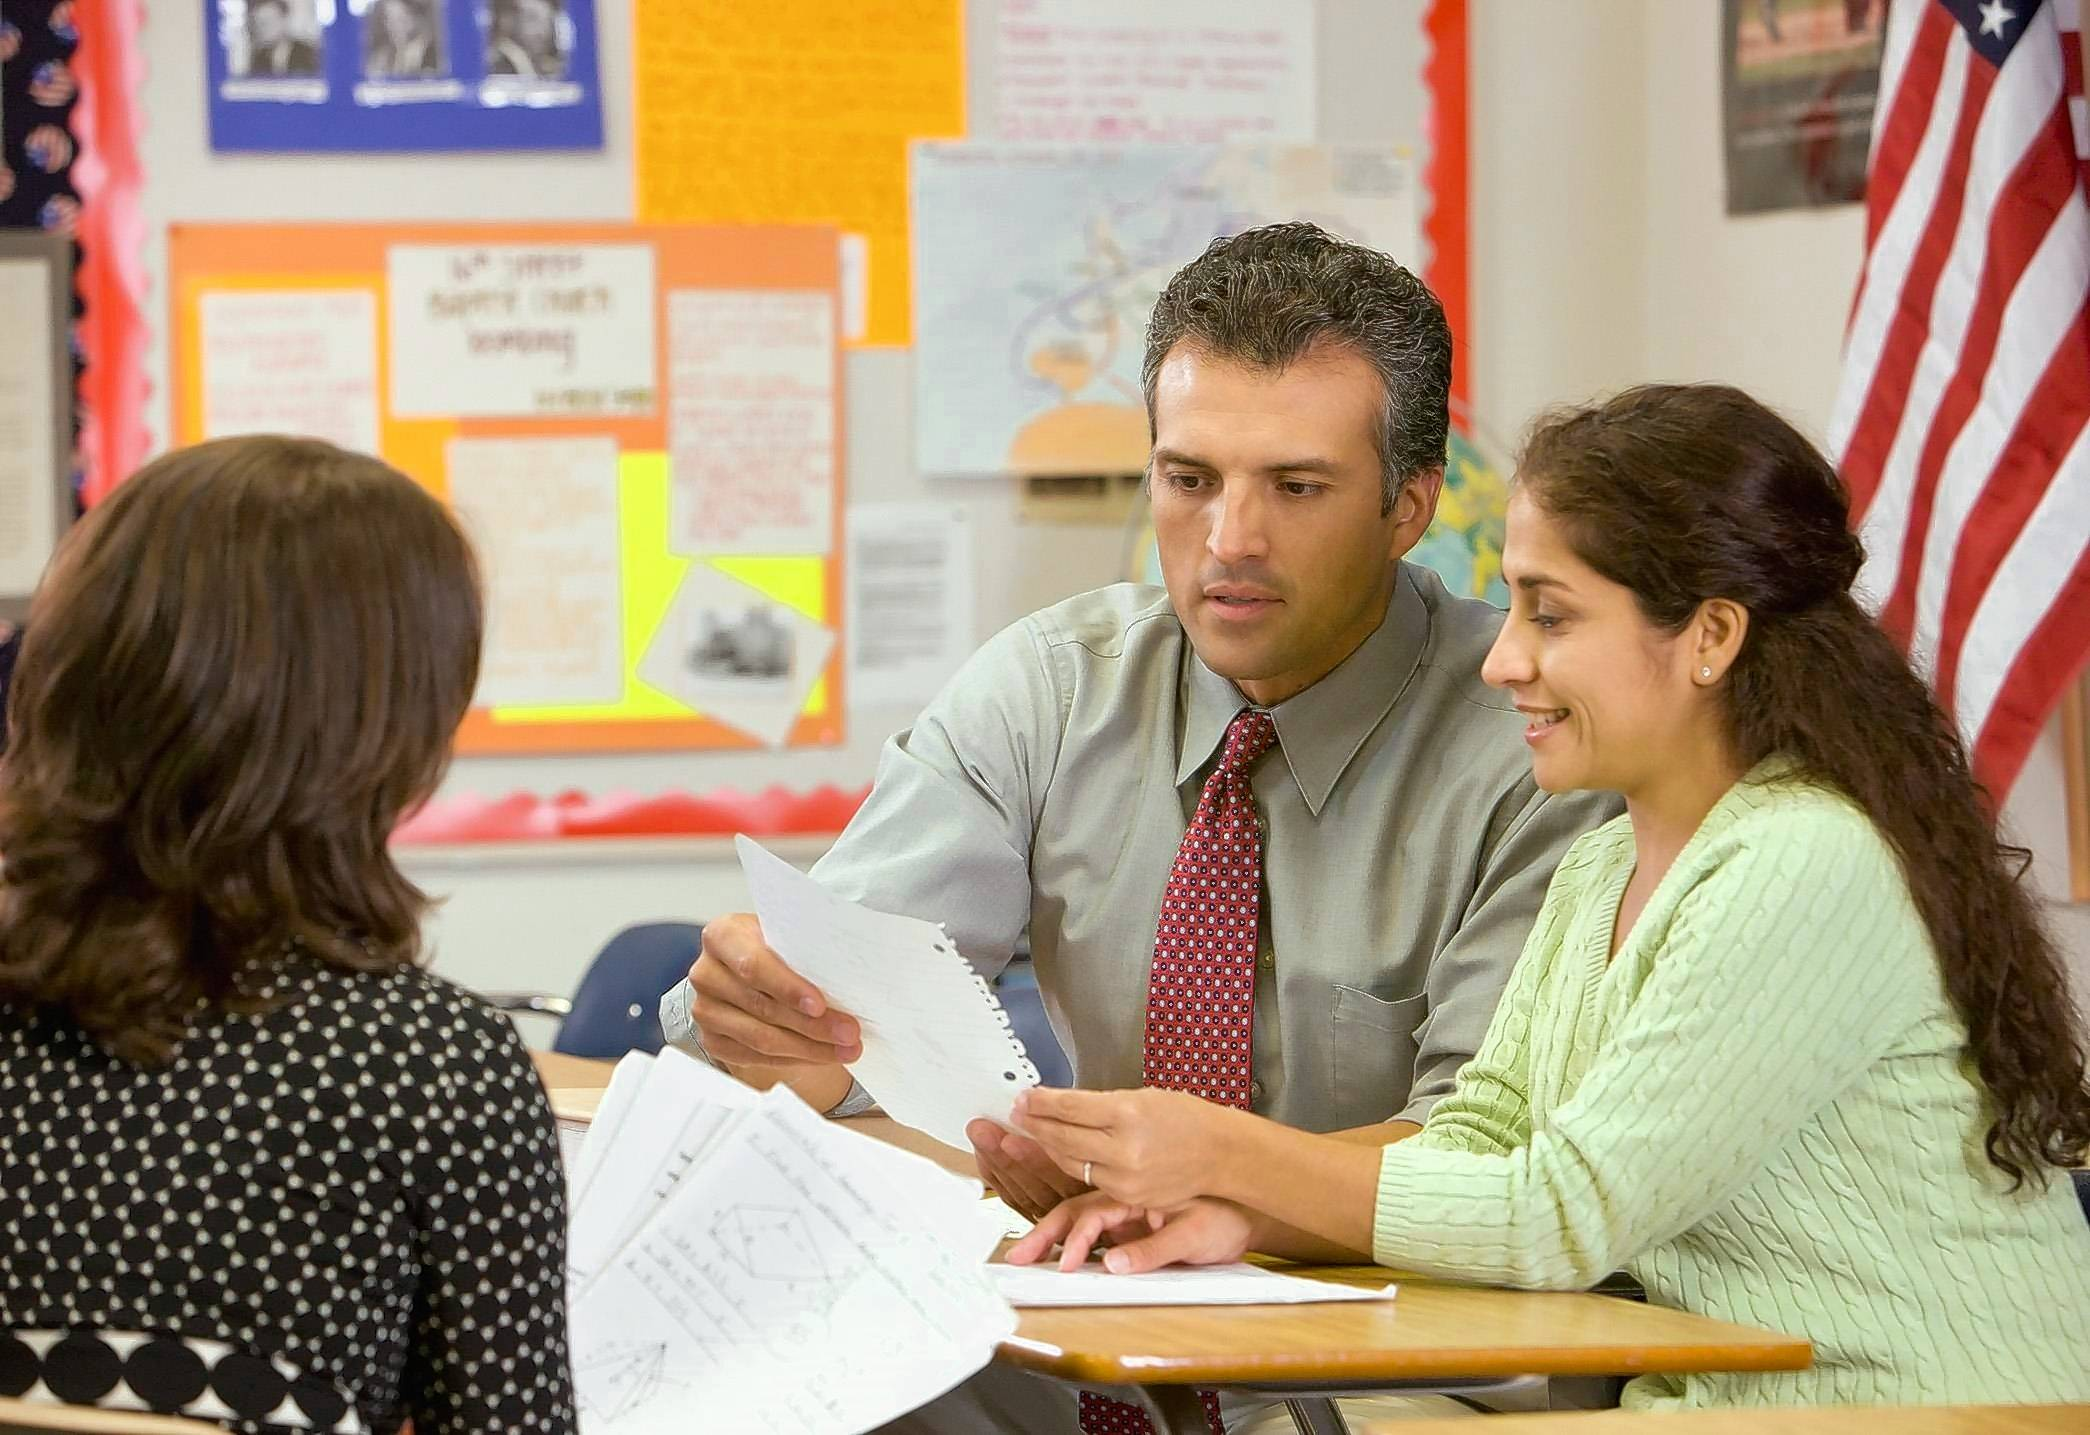 dealing with angry parents Teachers experience a growing number of angry, abusive parents the nea even provides special training courses on dealing with angry parents.